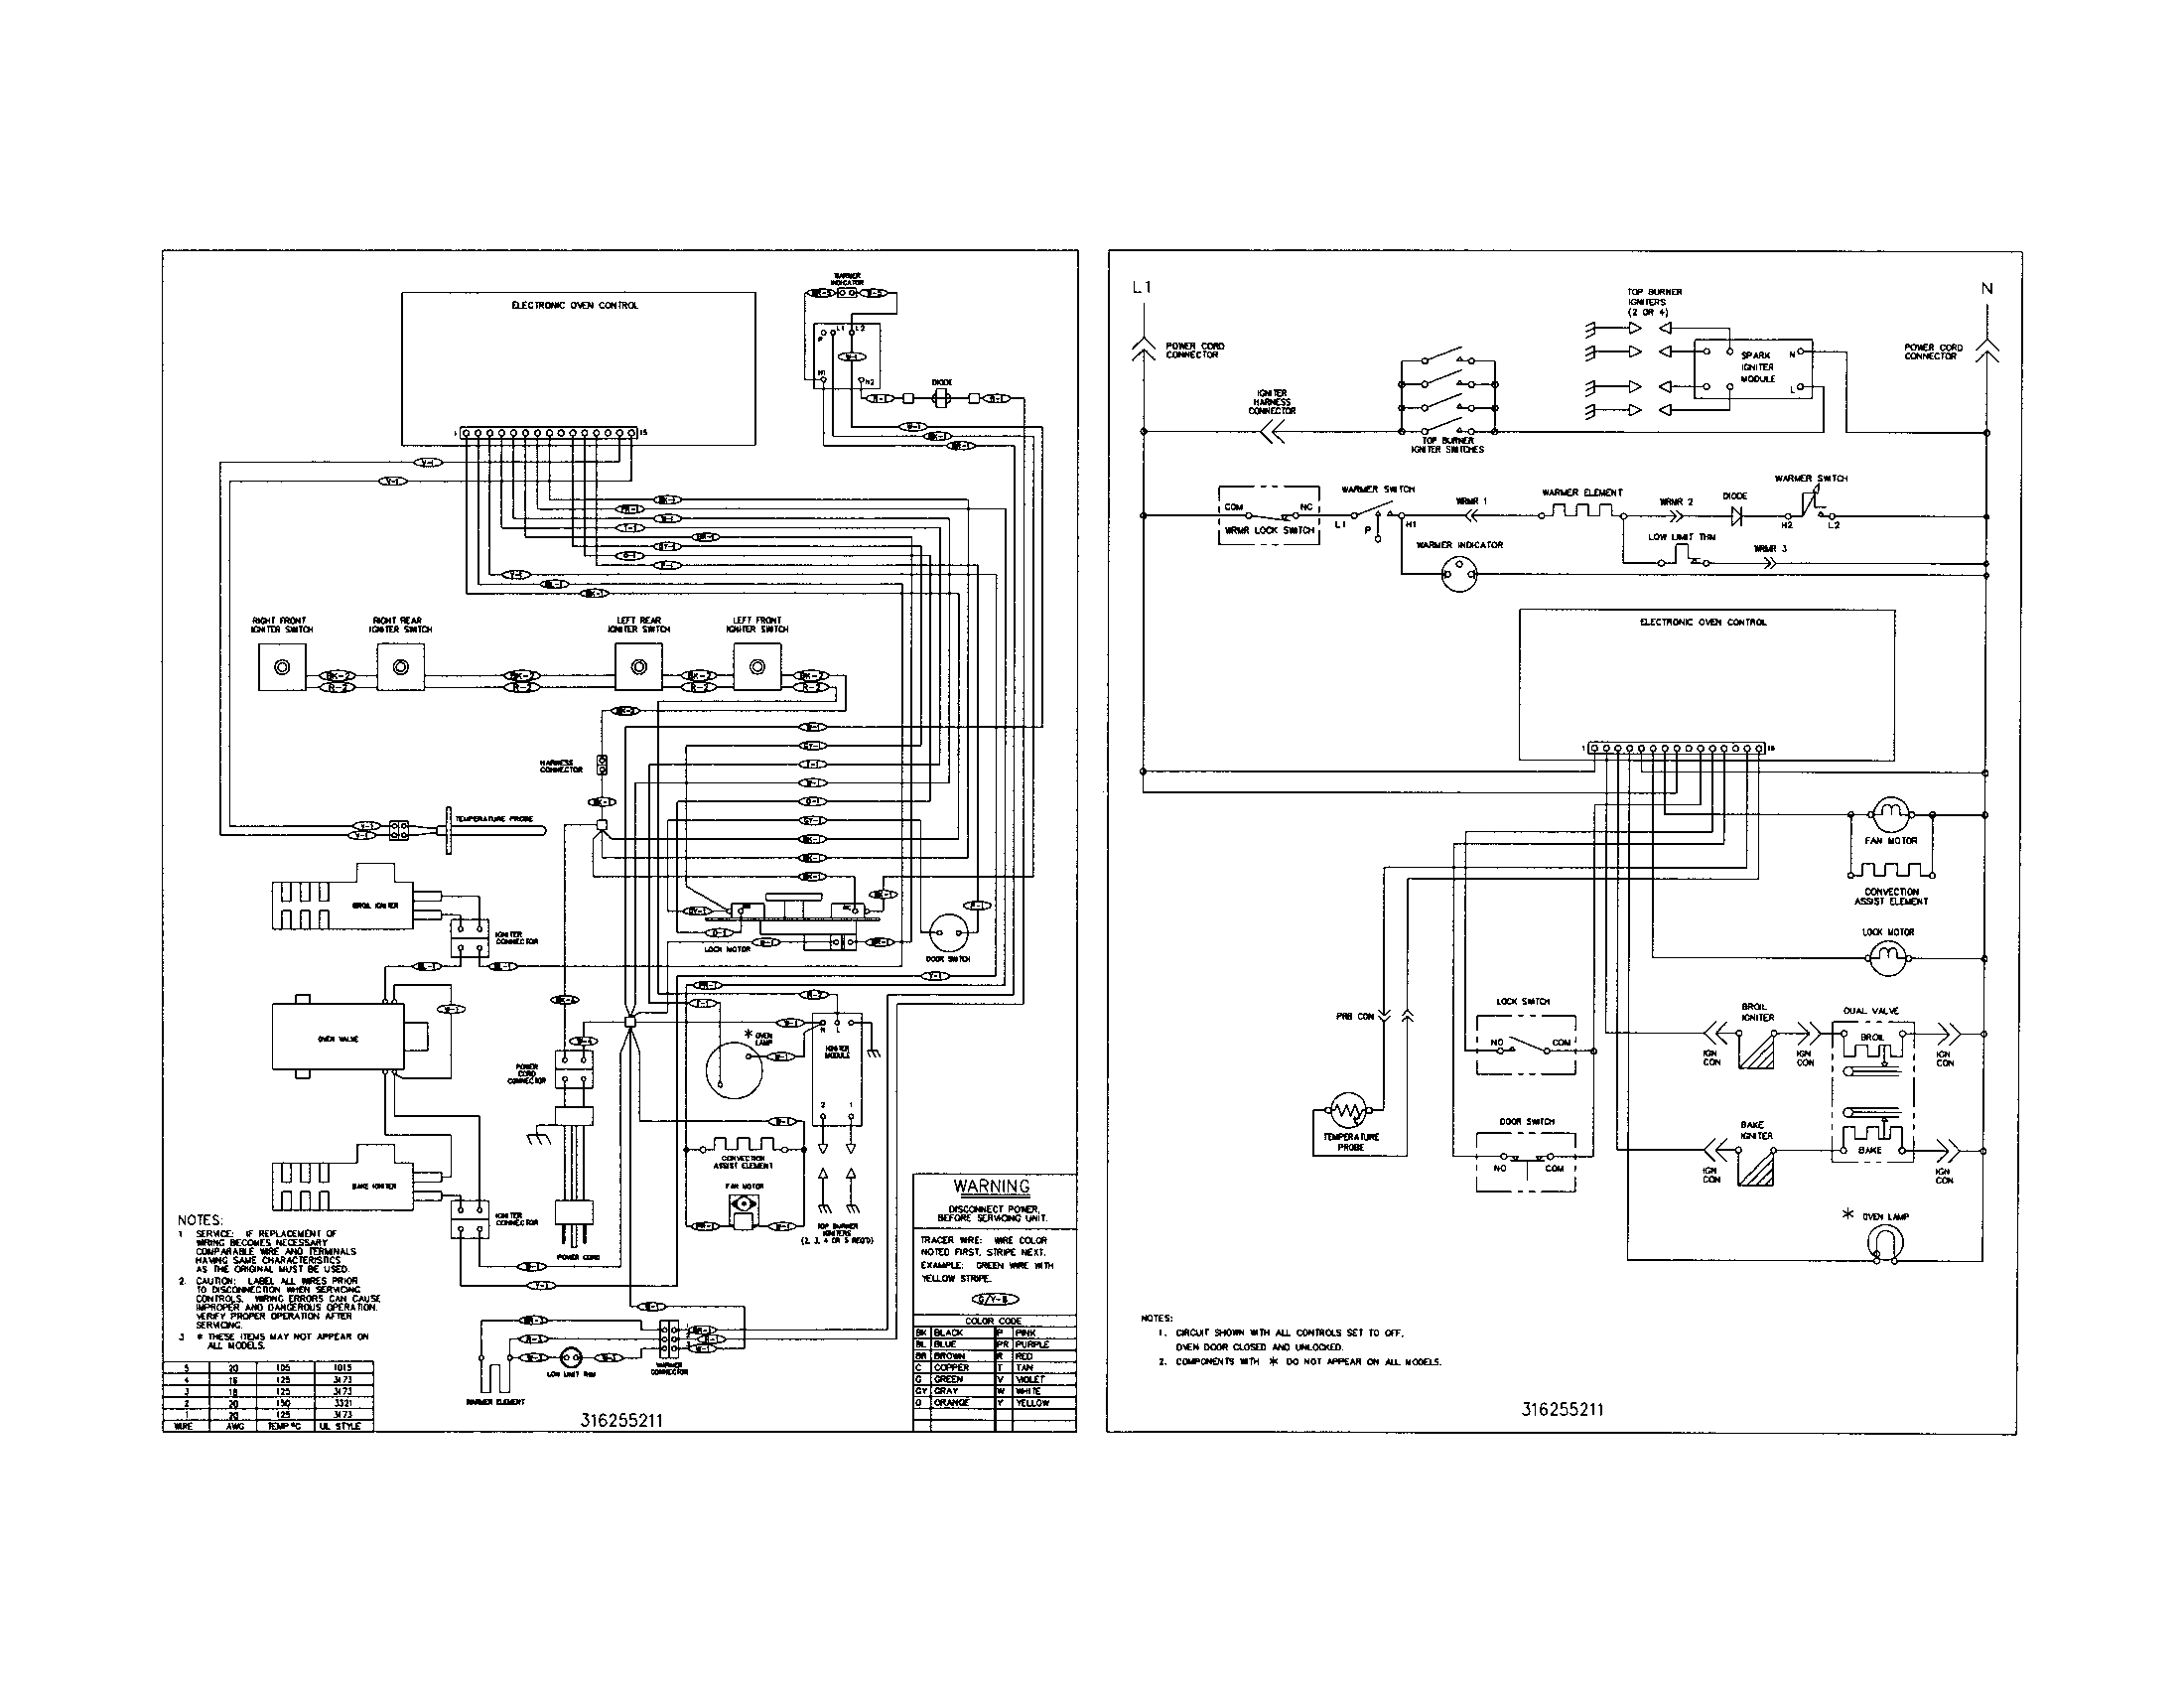 wiring schematic parts electrolux wiring diagram electrolux wiring diagrams collection  at alyssarenee.co